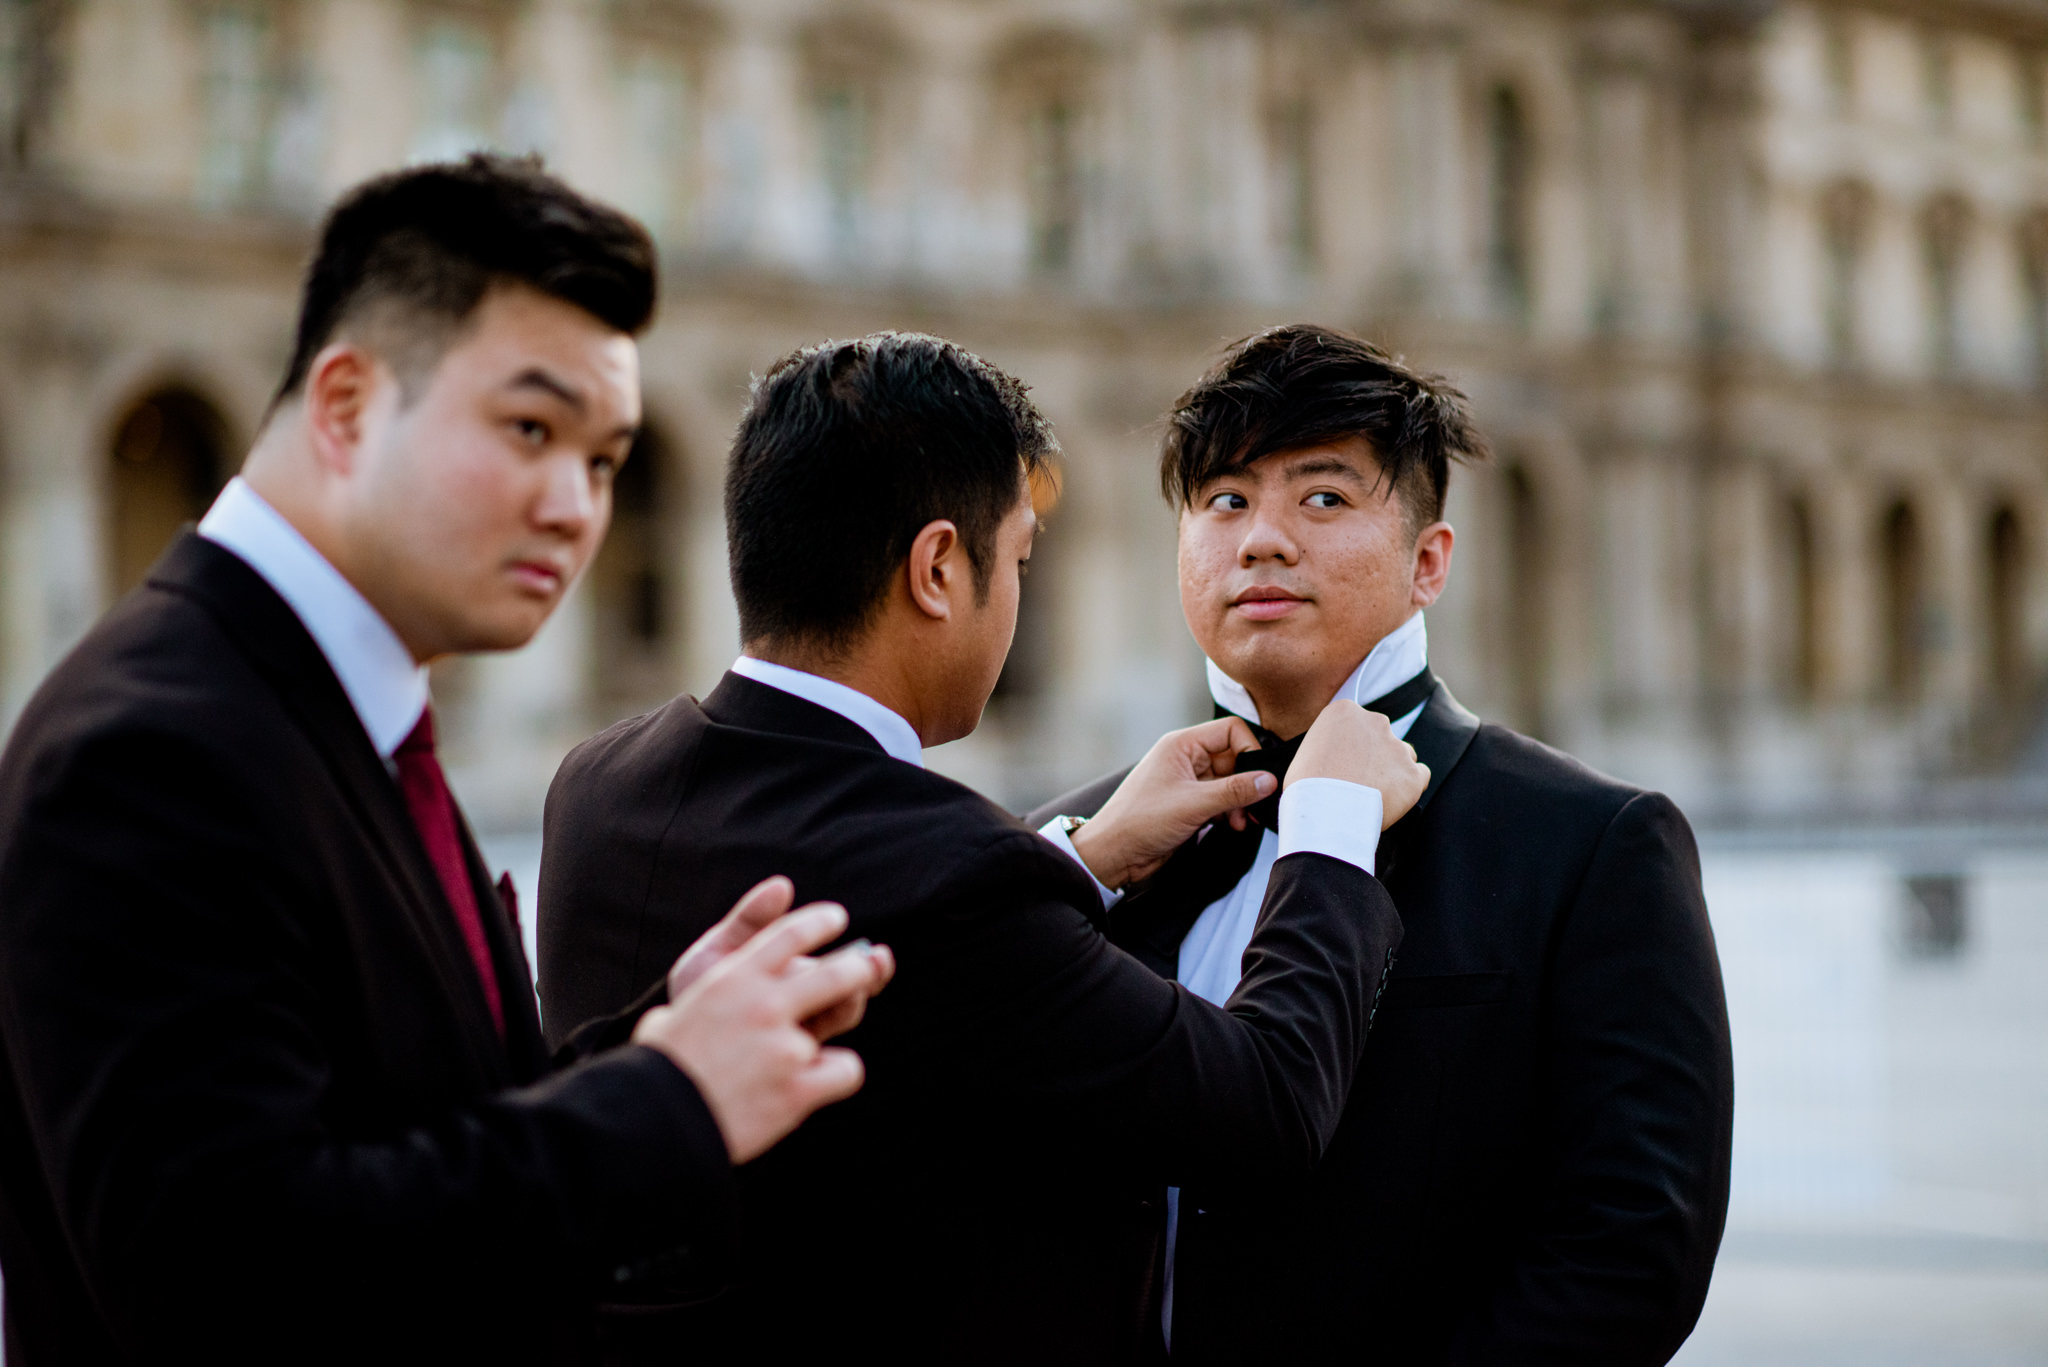 An asian man gets his bow-tie tied by his friend in front of the Louvre